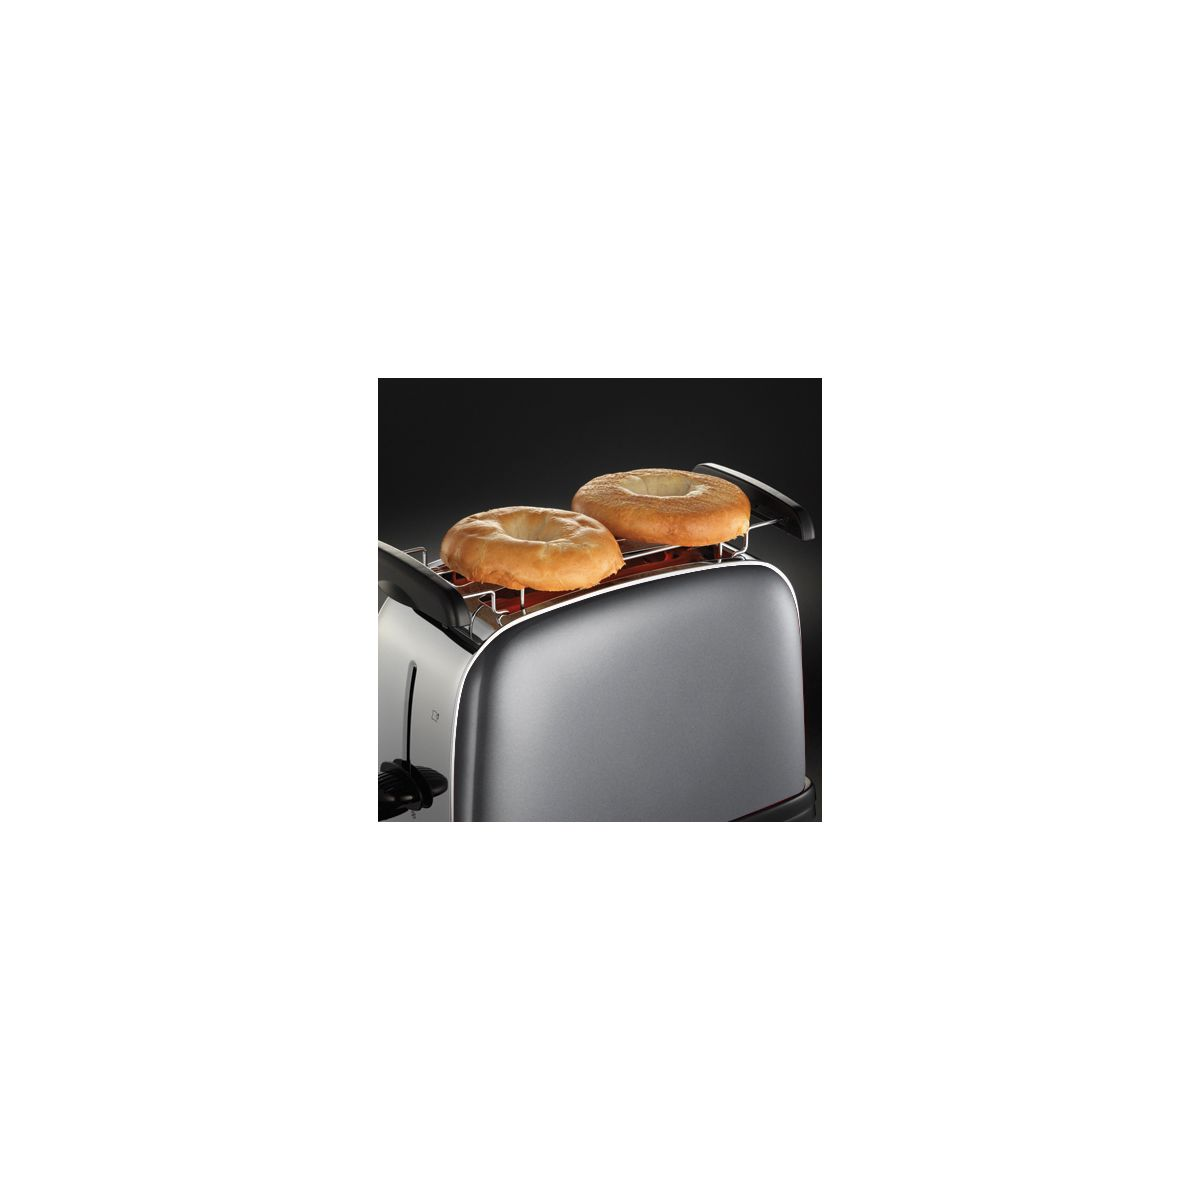 lectrom nager grille pain russell hobbs toaster gris. Black Bedroom Furniture Sets. Home Design Ideas